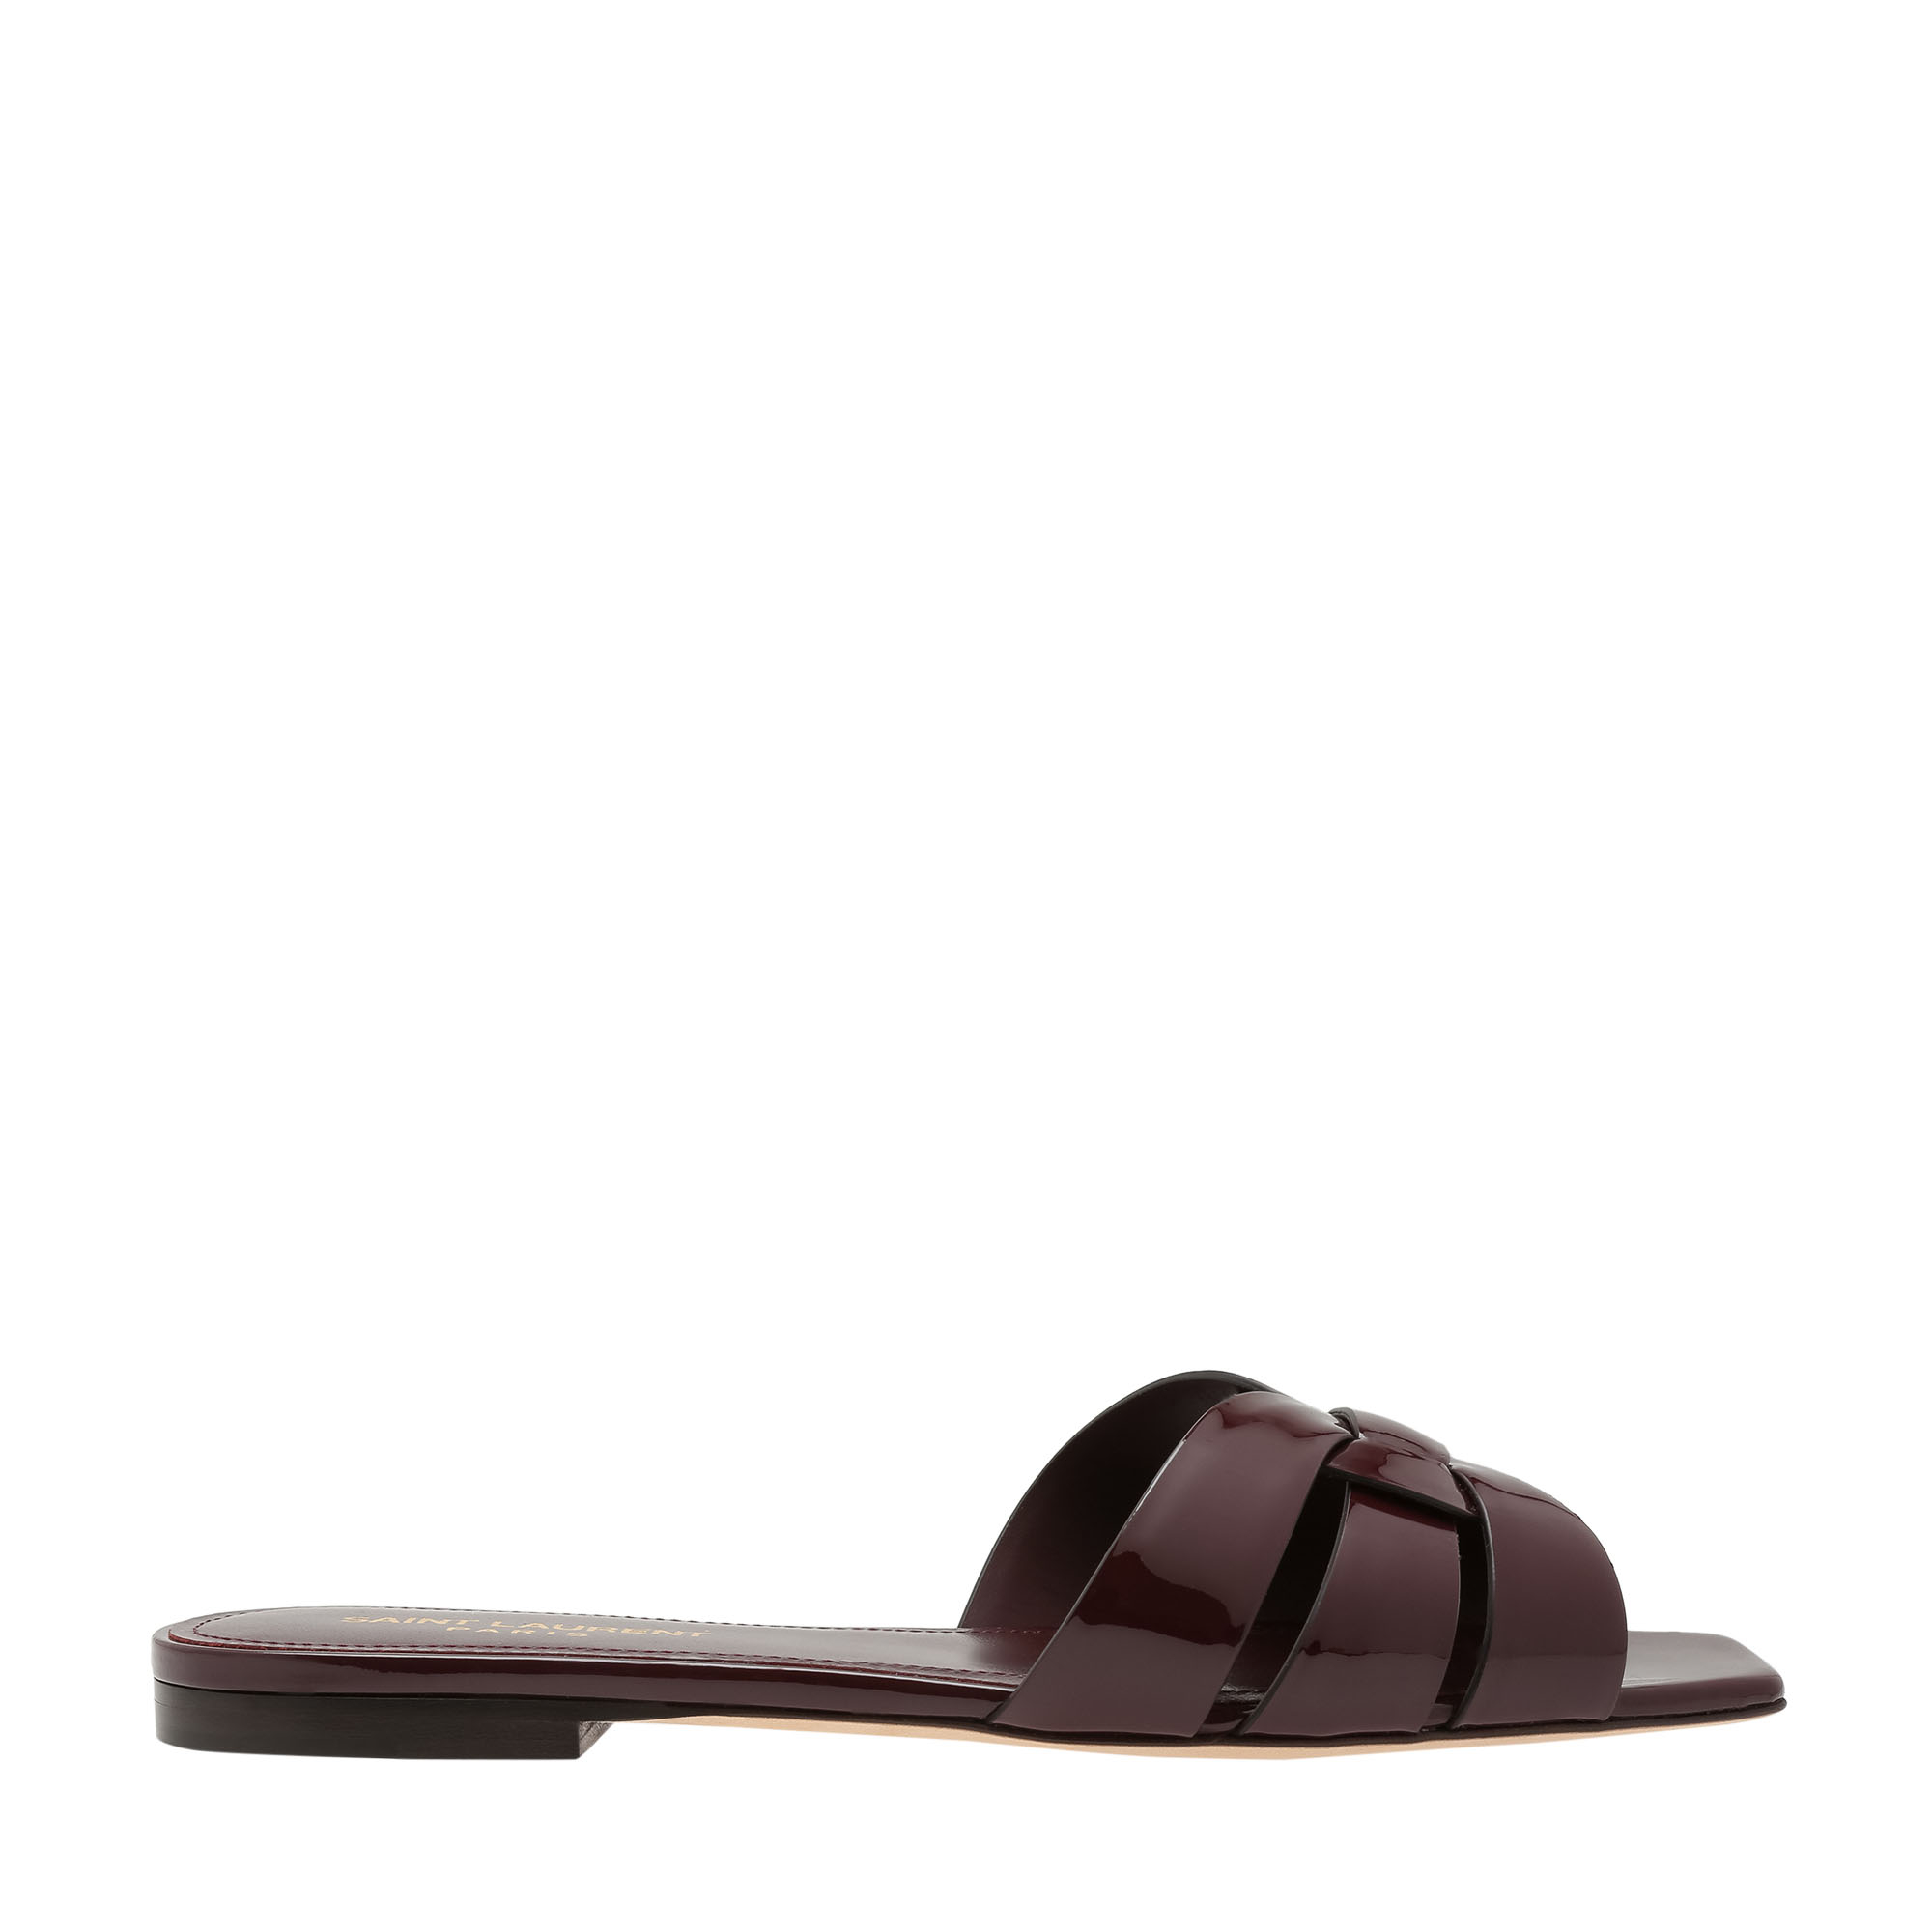 Tribute leather flat sandals